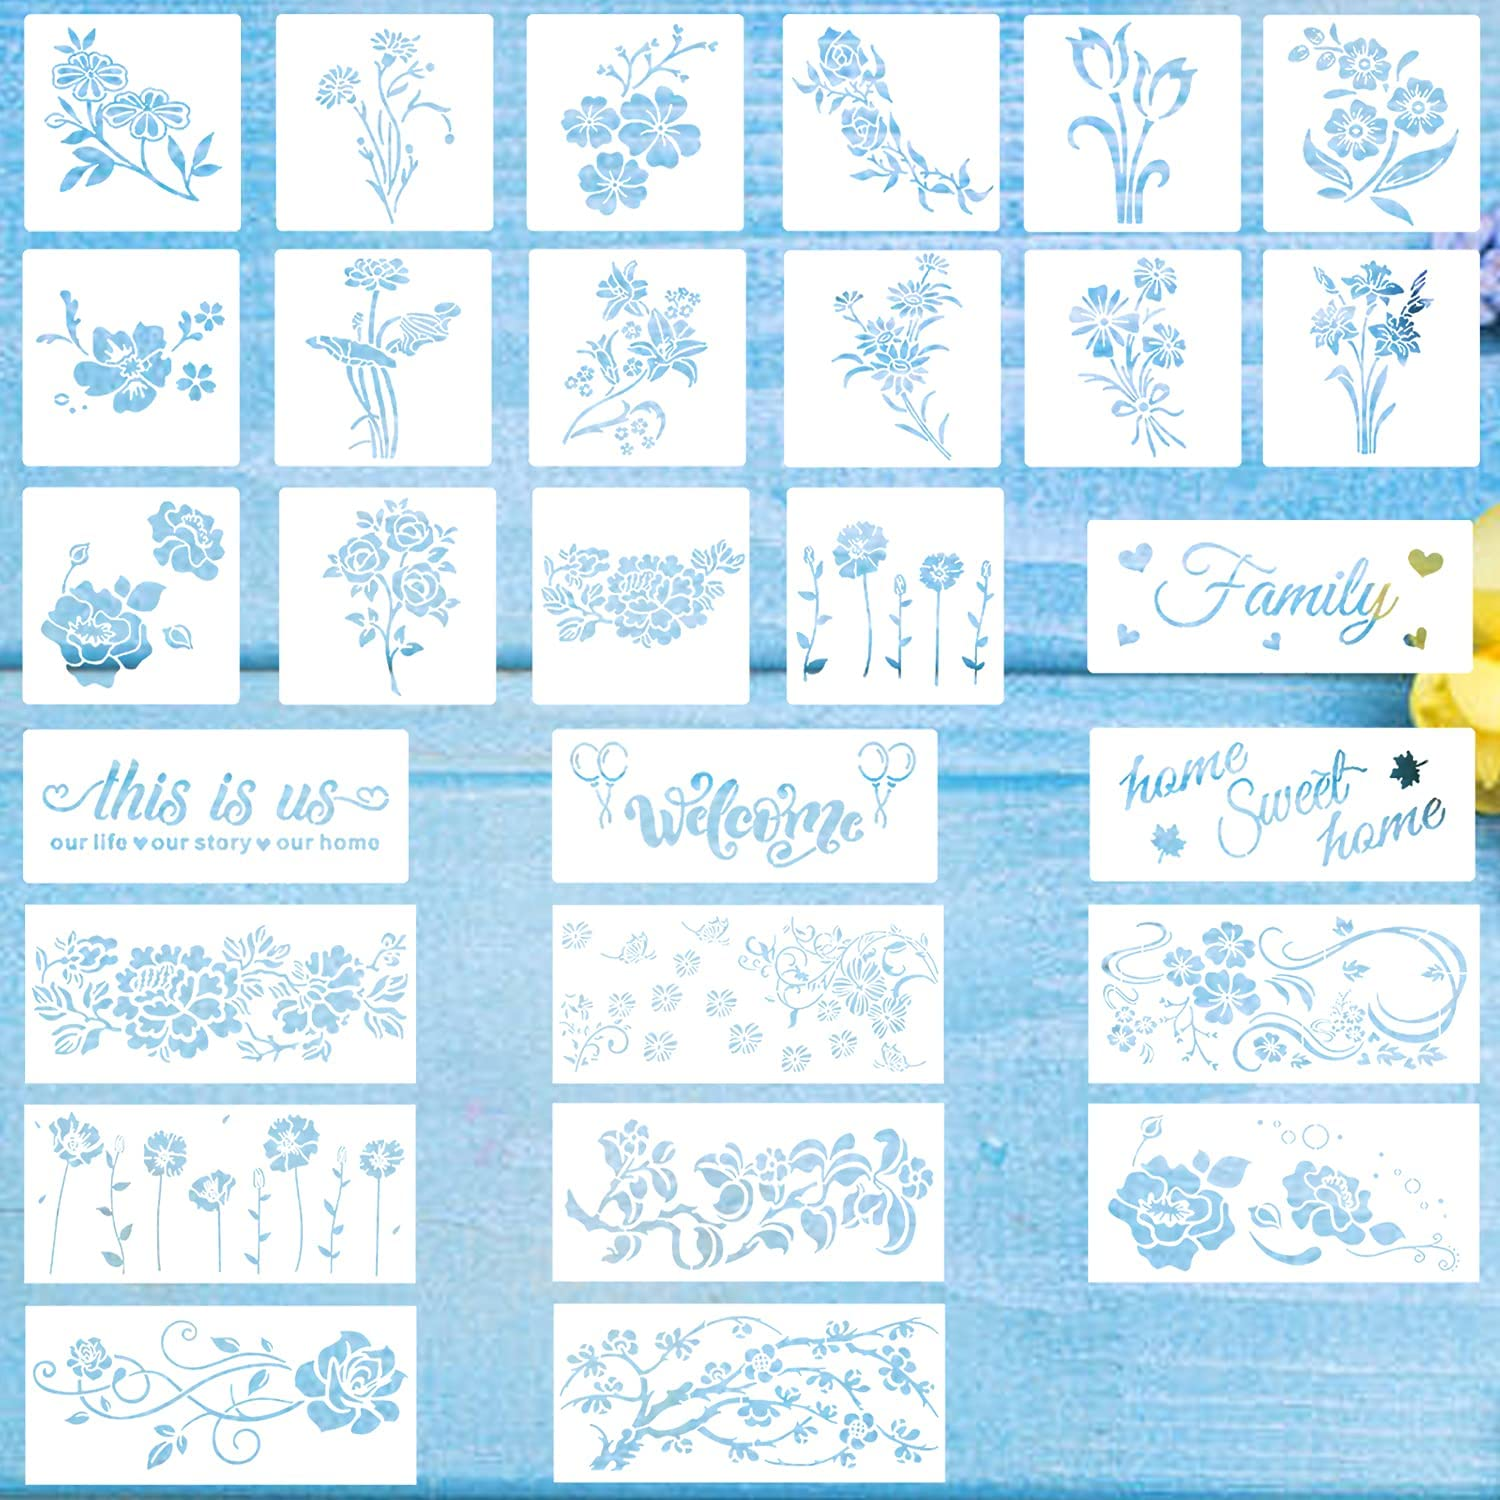 OBSGUMU 28Pieces Plant Flower Stencil Painting Templates Reusable Painting Stencil for DIY Furniture Wall Floor Decoration Home Decor,3 Sizes and 28 Patterns